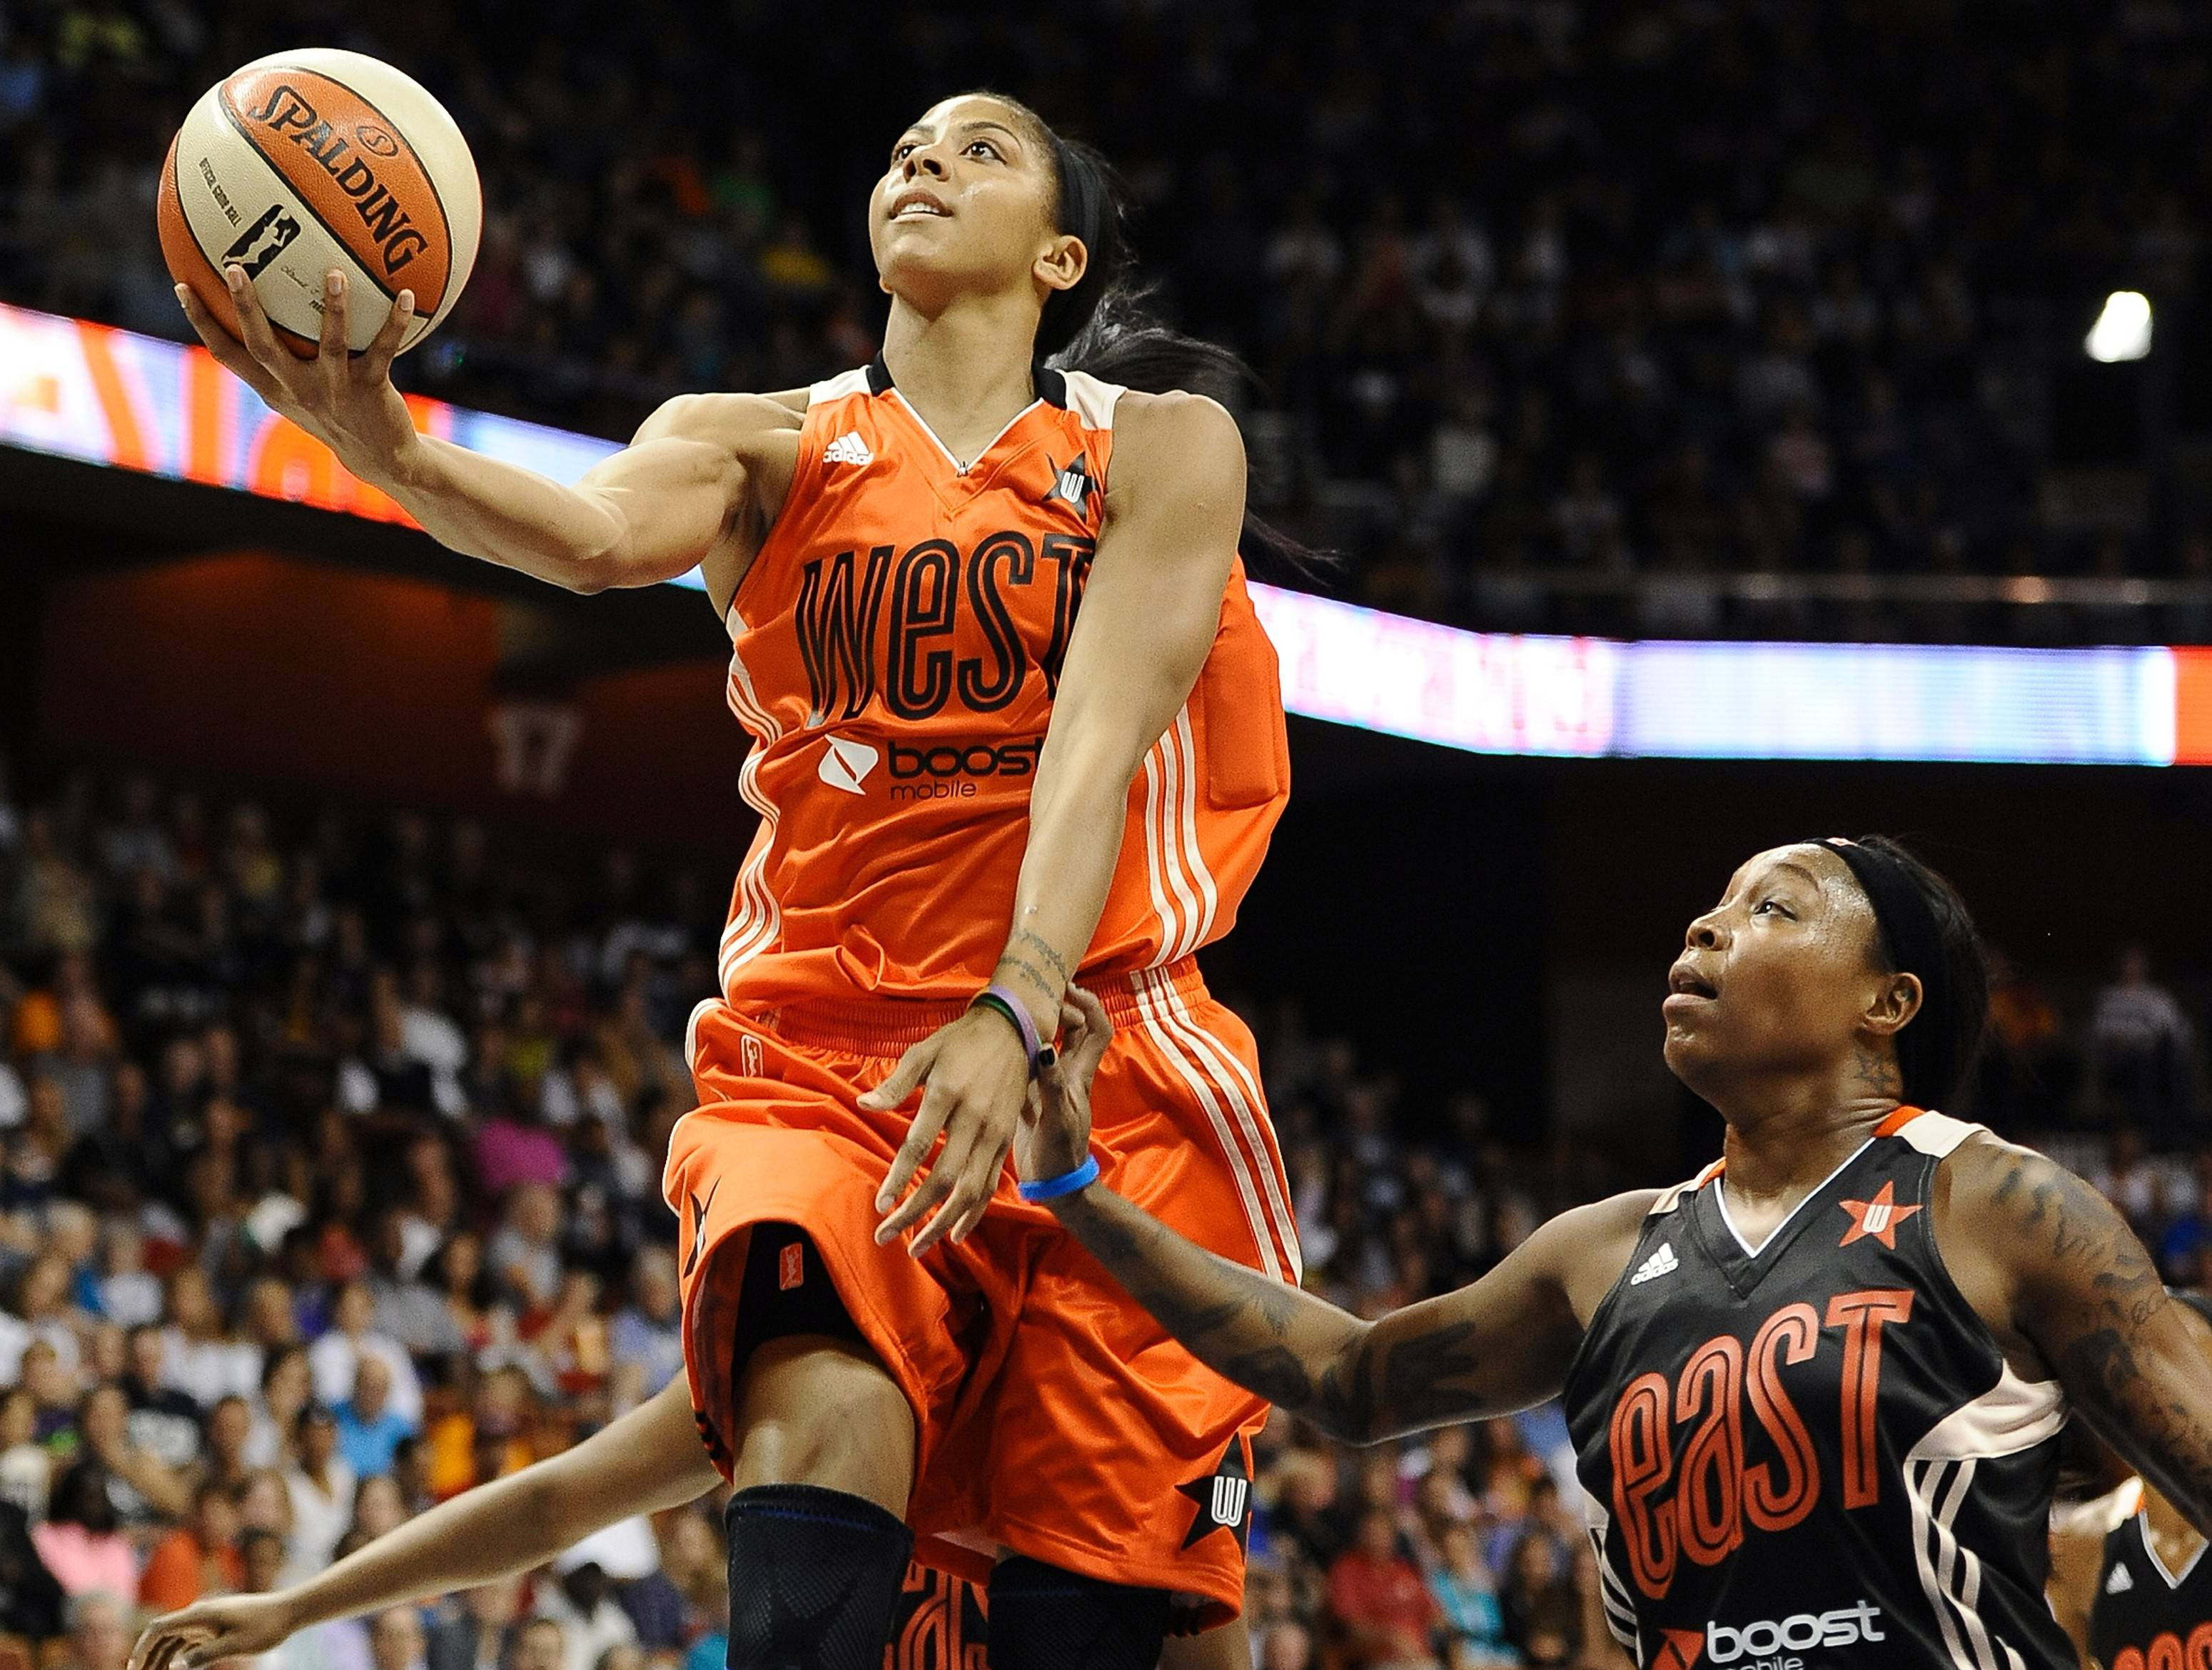 Candace Parker of the Los Angeles Sparks will try to repeat as the WNBA's MVP when the season begins Friday.